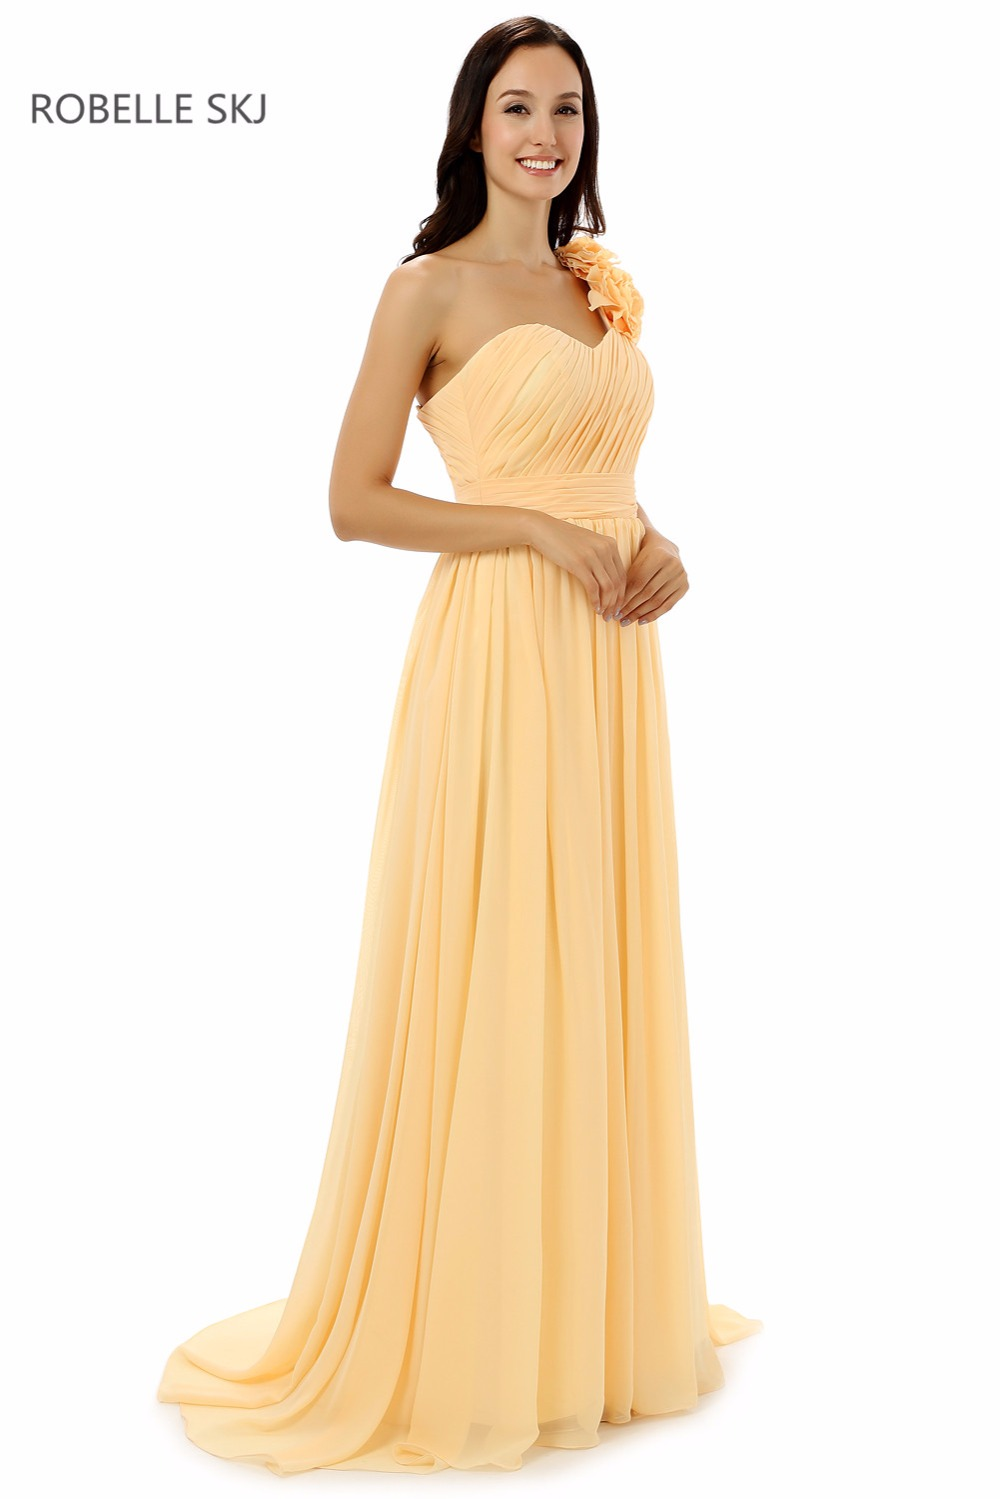 Aliexpress buy real photo one shoulder chiffon colored aliexpress buy real photo one shoulder chiffon colored bridesmaid dresses long prom dress junior bridesmaid dress with pleats and flowers from ombrellifo Choice Image